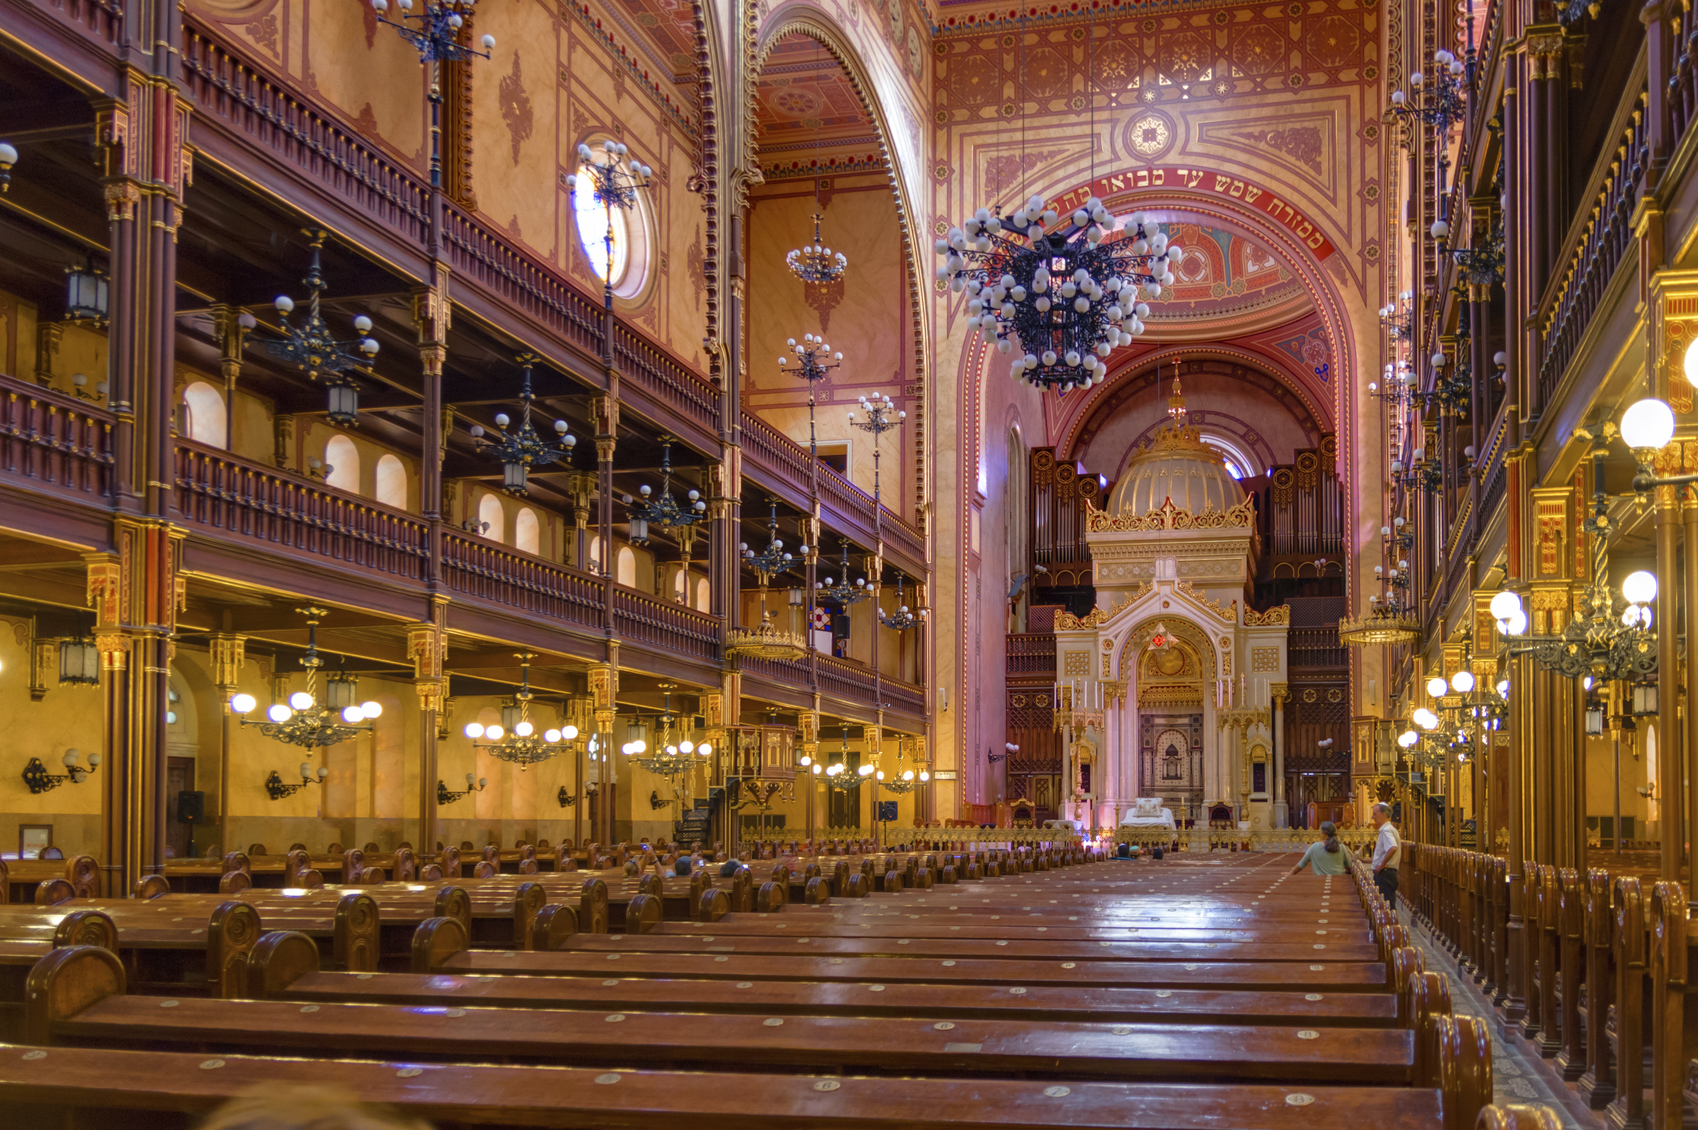 Budapest, Hungary - September 17, 2015: Interior of the Great Synagogue in Dohany Street. The Dohany Street synagogue is the largest synagogue in Europe.